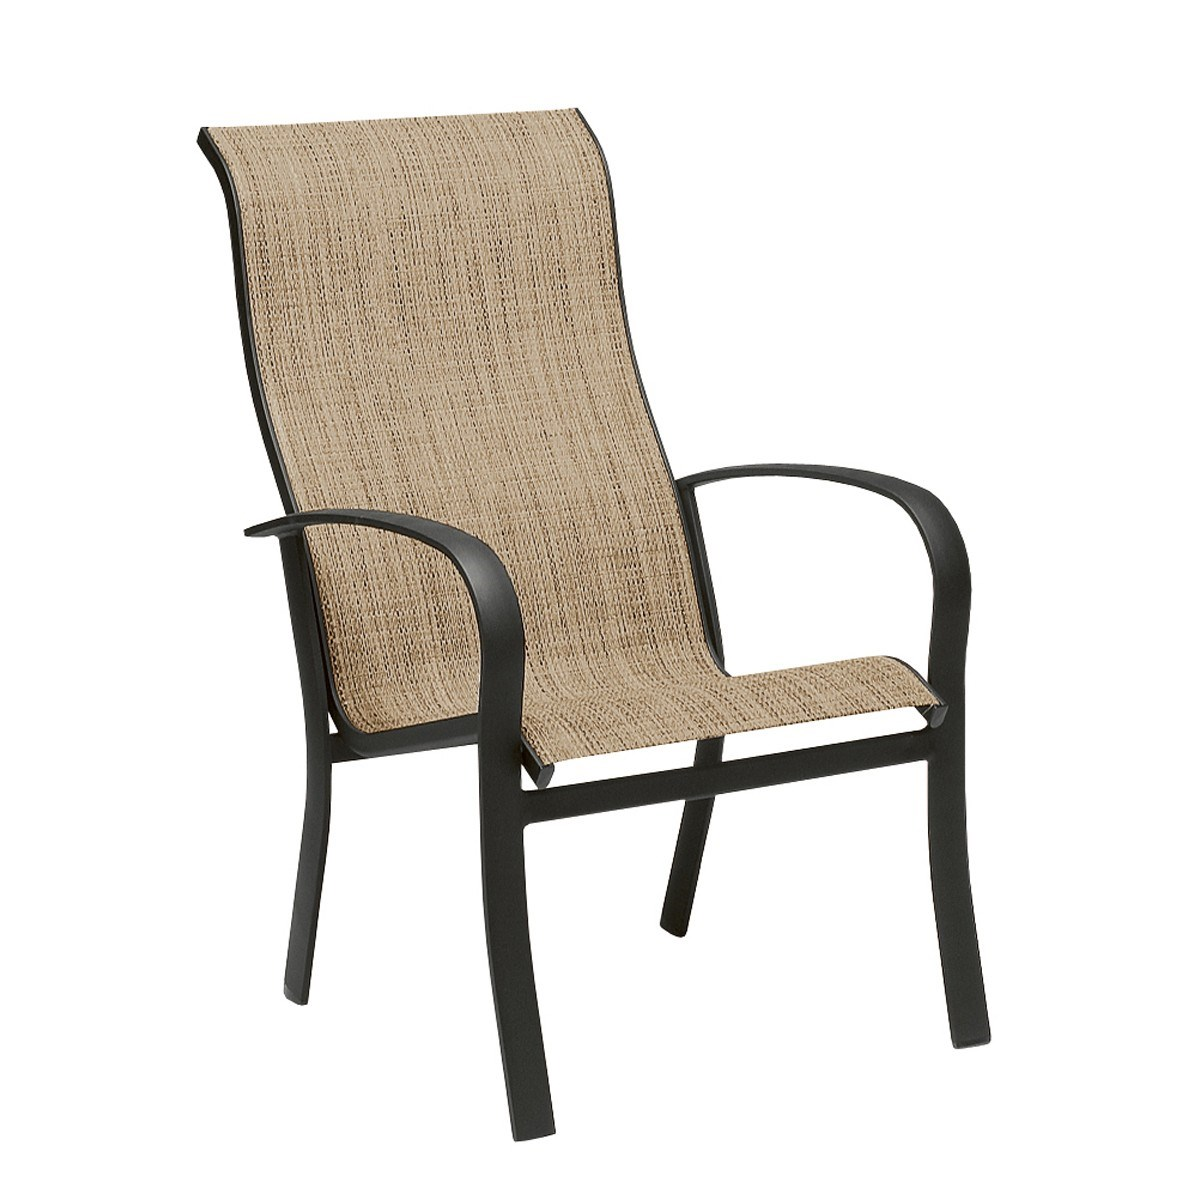 high back outdoor chair